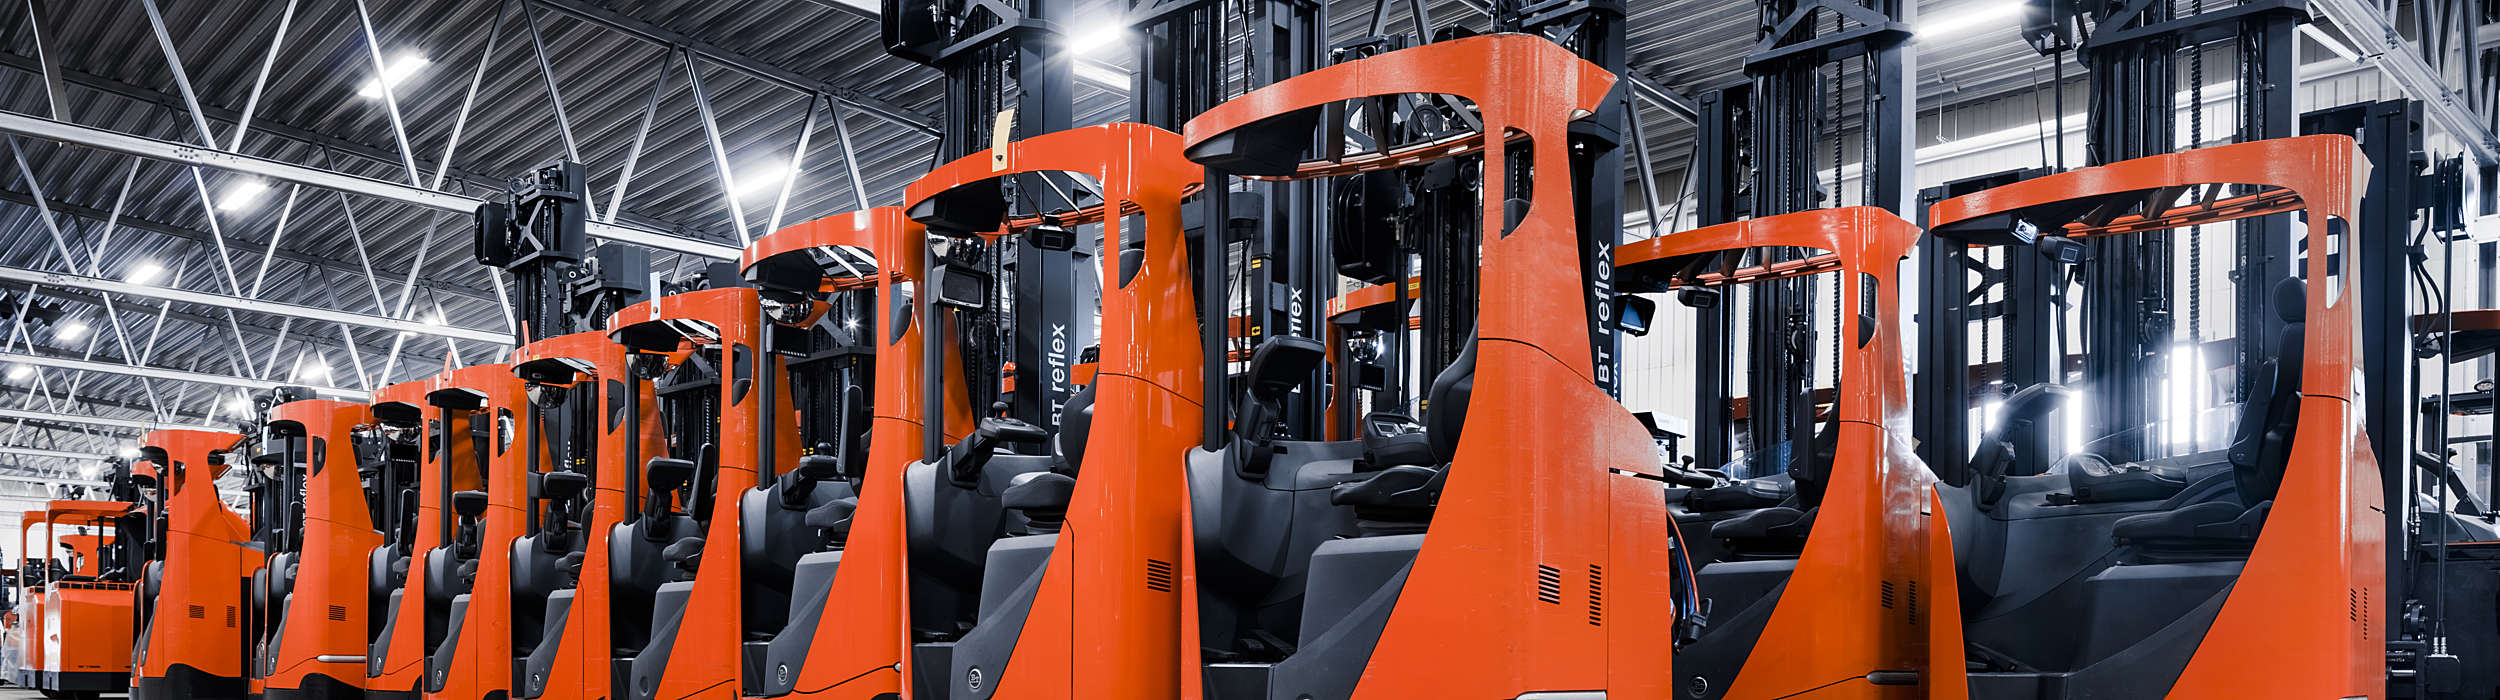 Toyota fleet of reach trucks